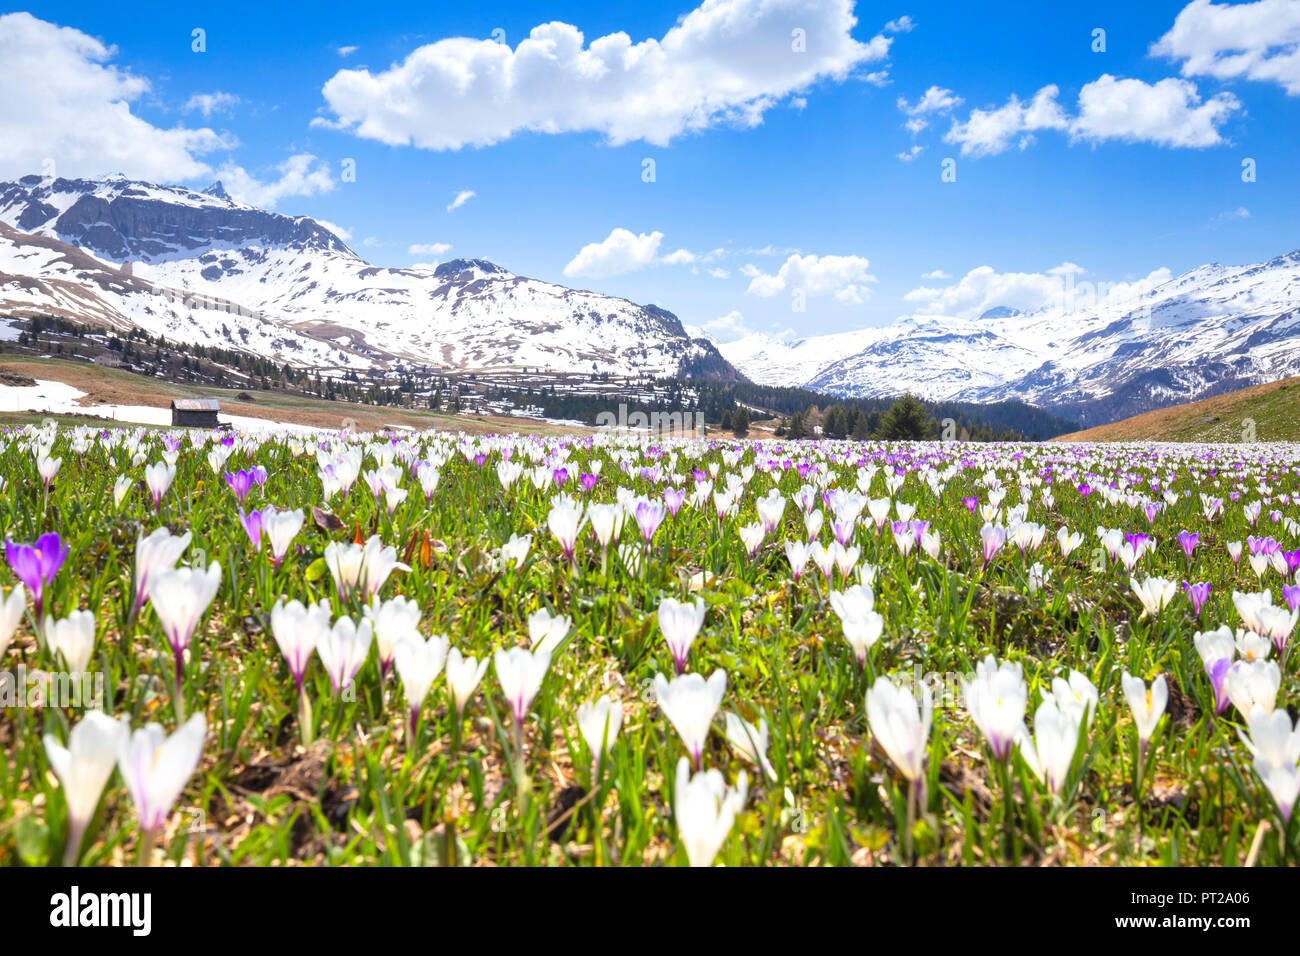 Flowering of Crocus nivea at Alp Flix, Alp Flix, Sur, Surses, Parc Ela, Region of Albula, Canton of Graubünden, Switzerland, Europe, - Stock Image